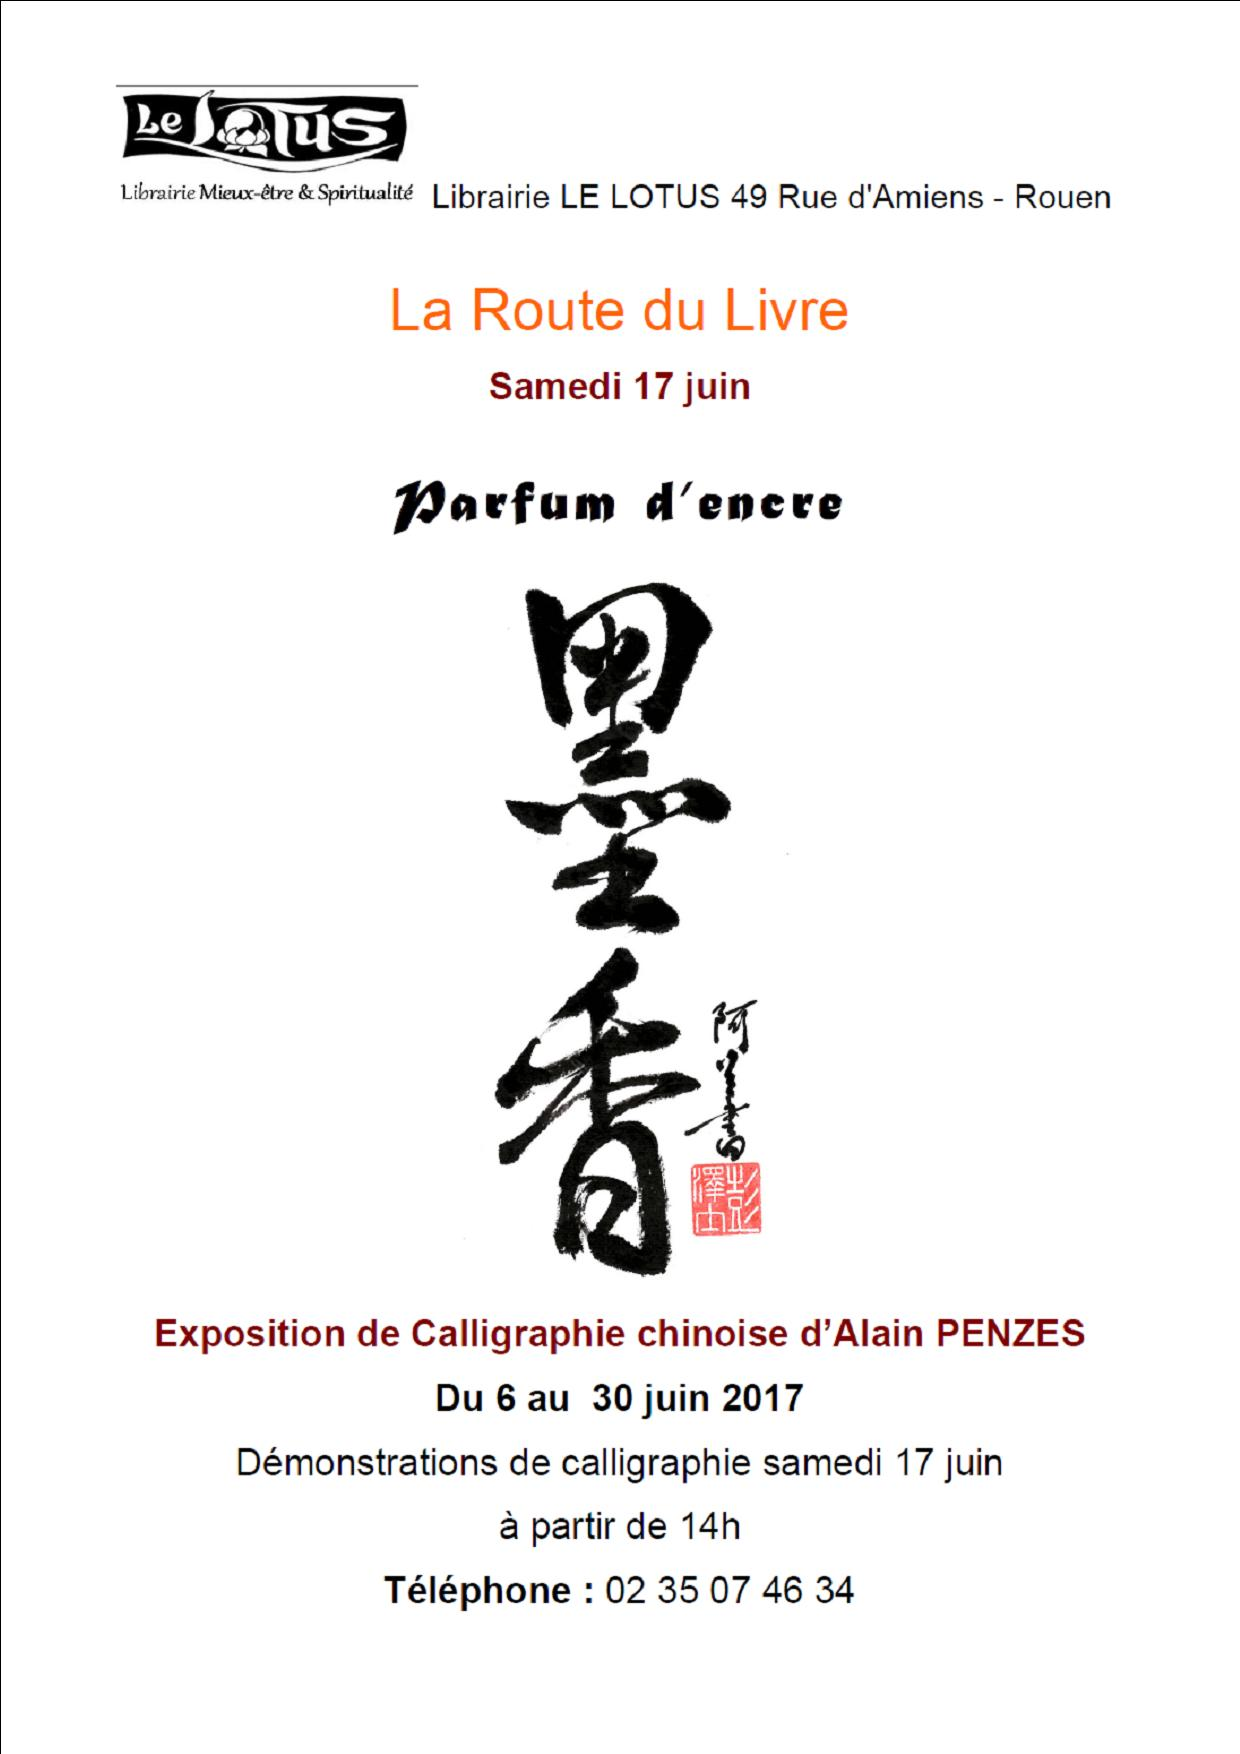 EXPOSITION - CALLIGRAPHIE CHINOISE - PARFUM D'ENCRE